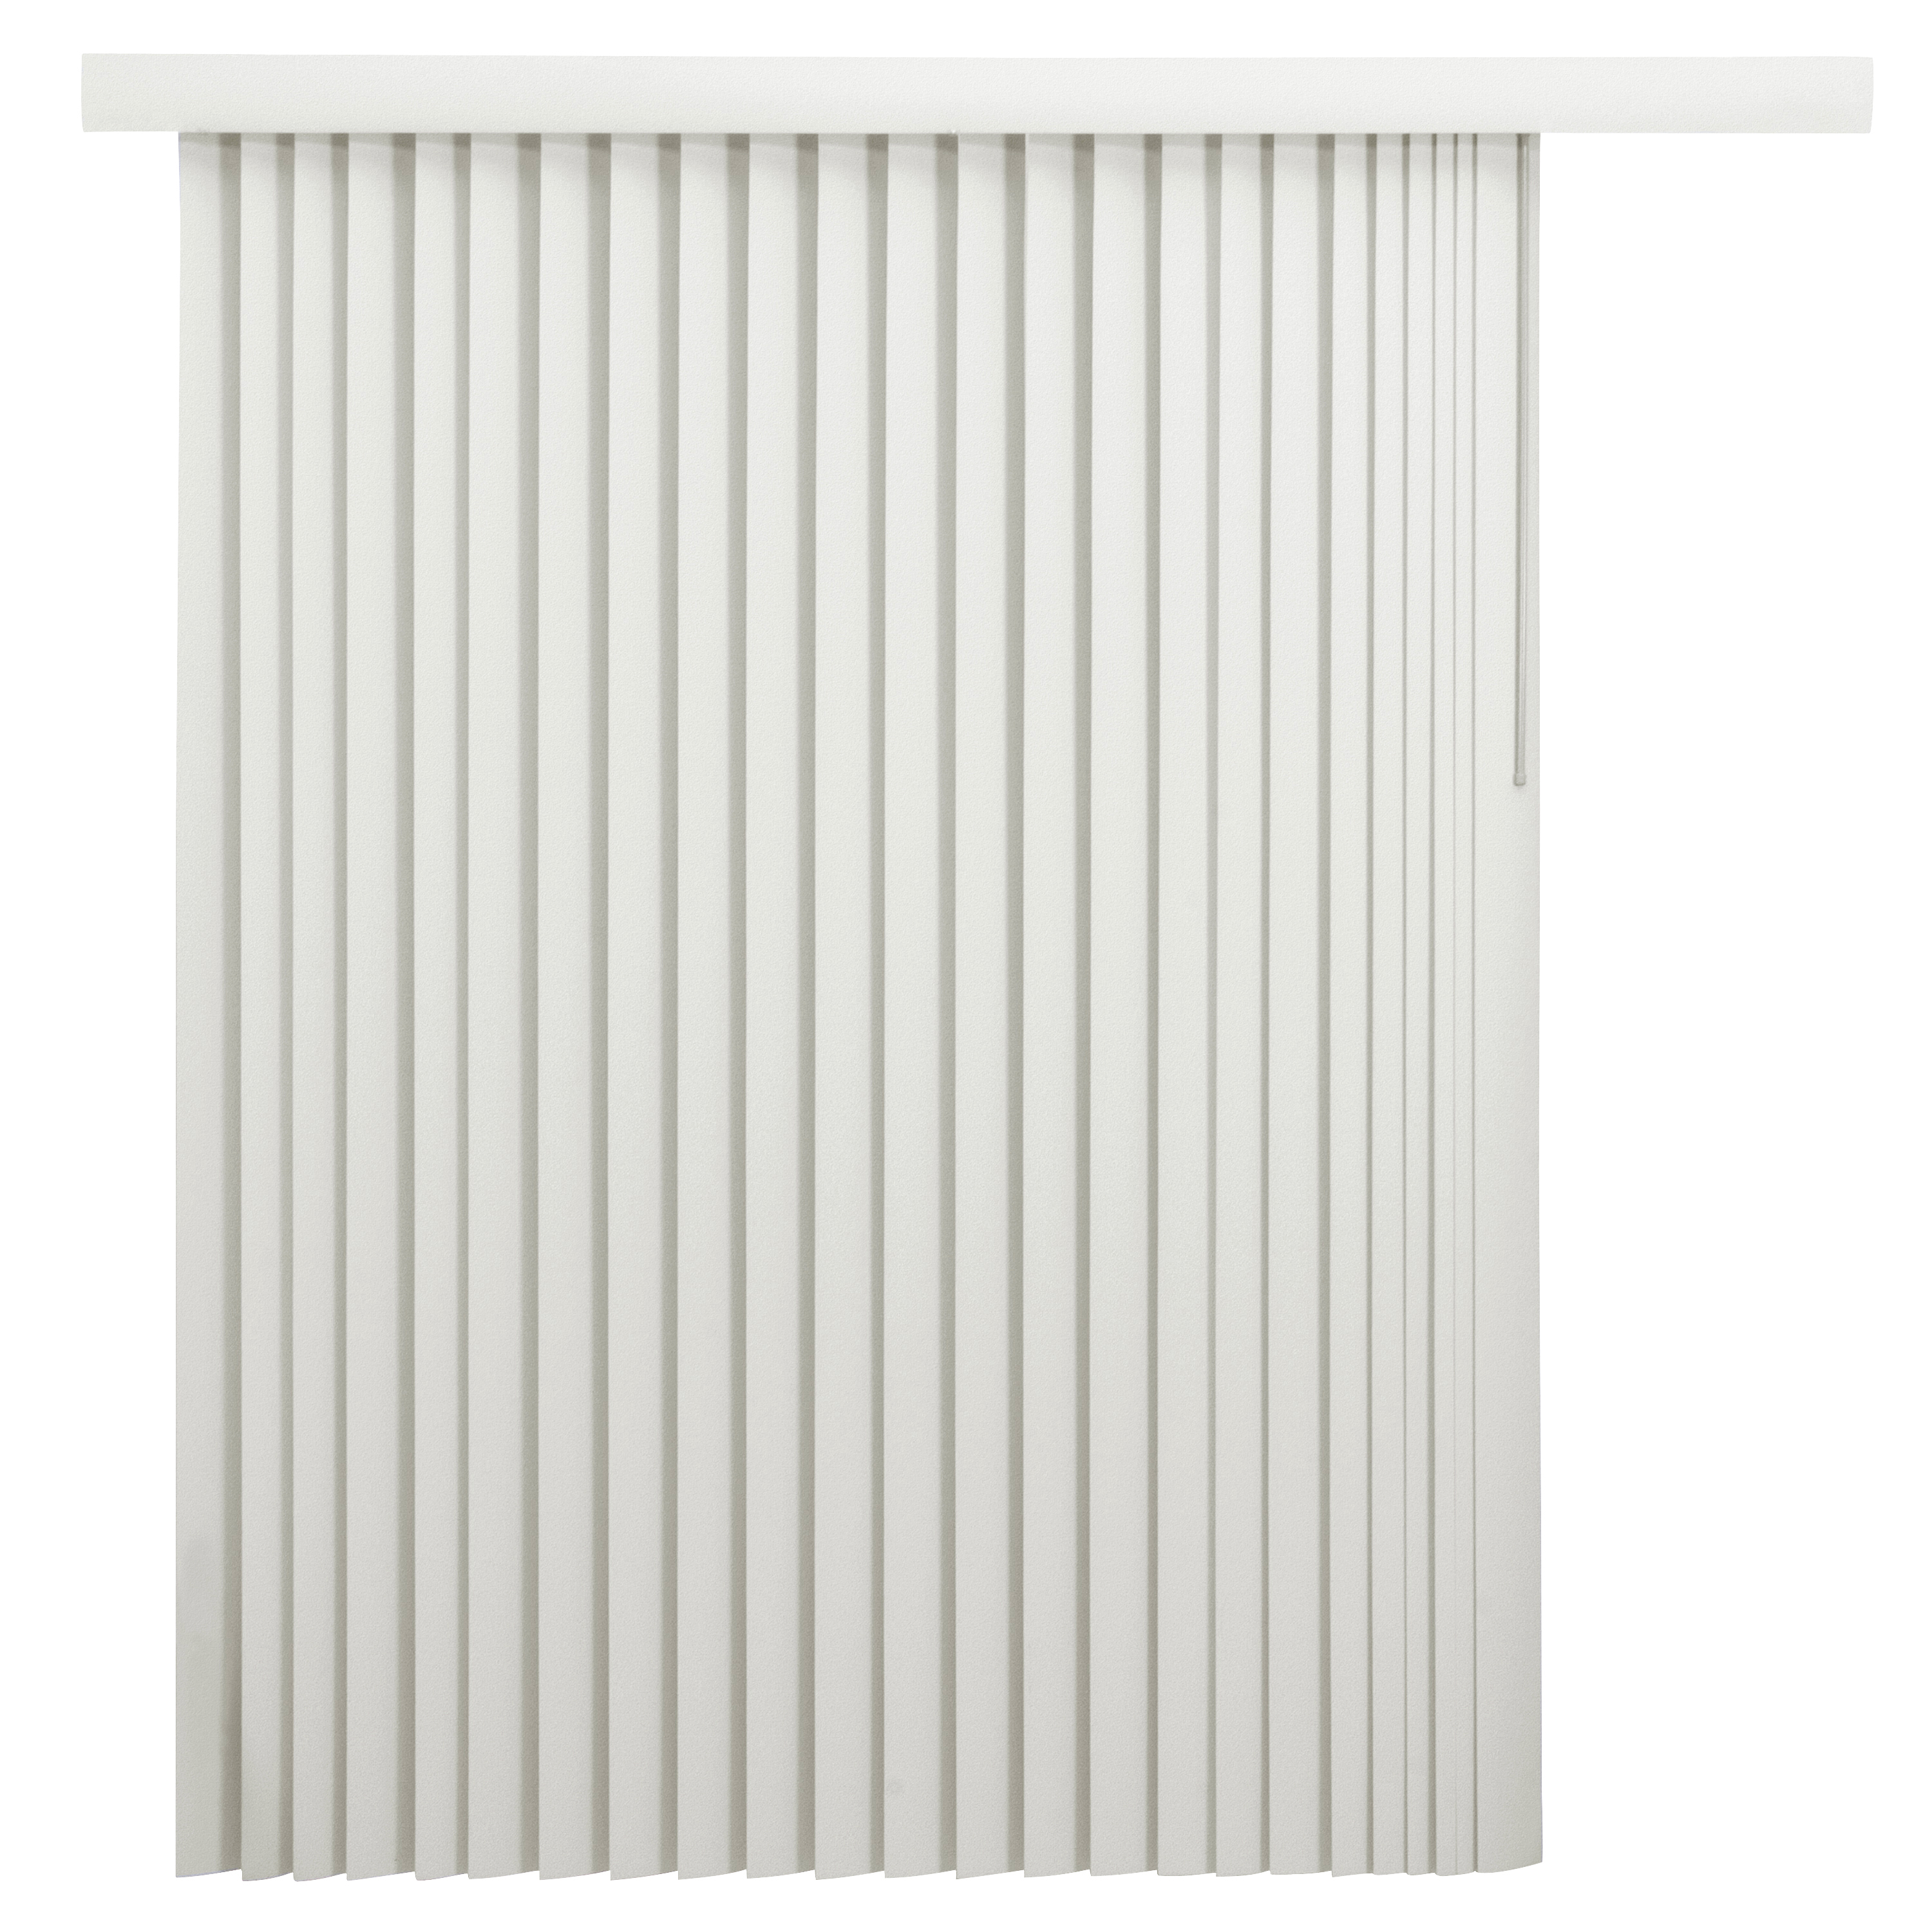 Mainstays Room-Darkening Vertical Blinds with Embossed Leaf Pattern, Oyster